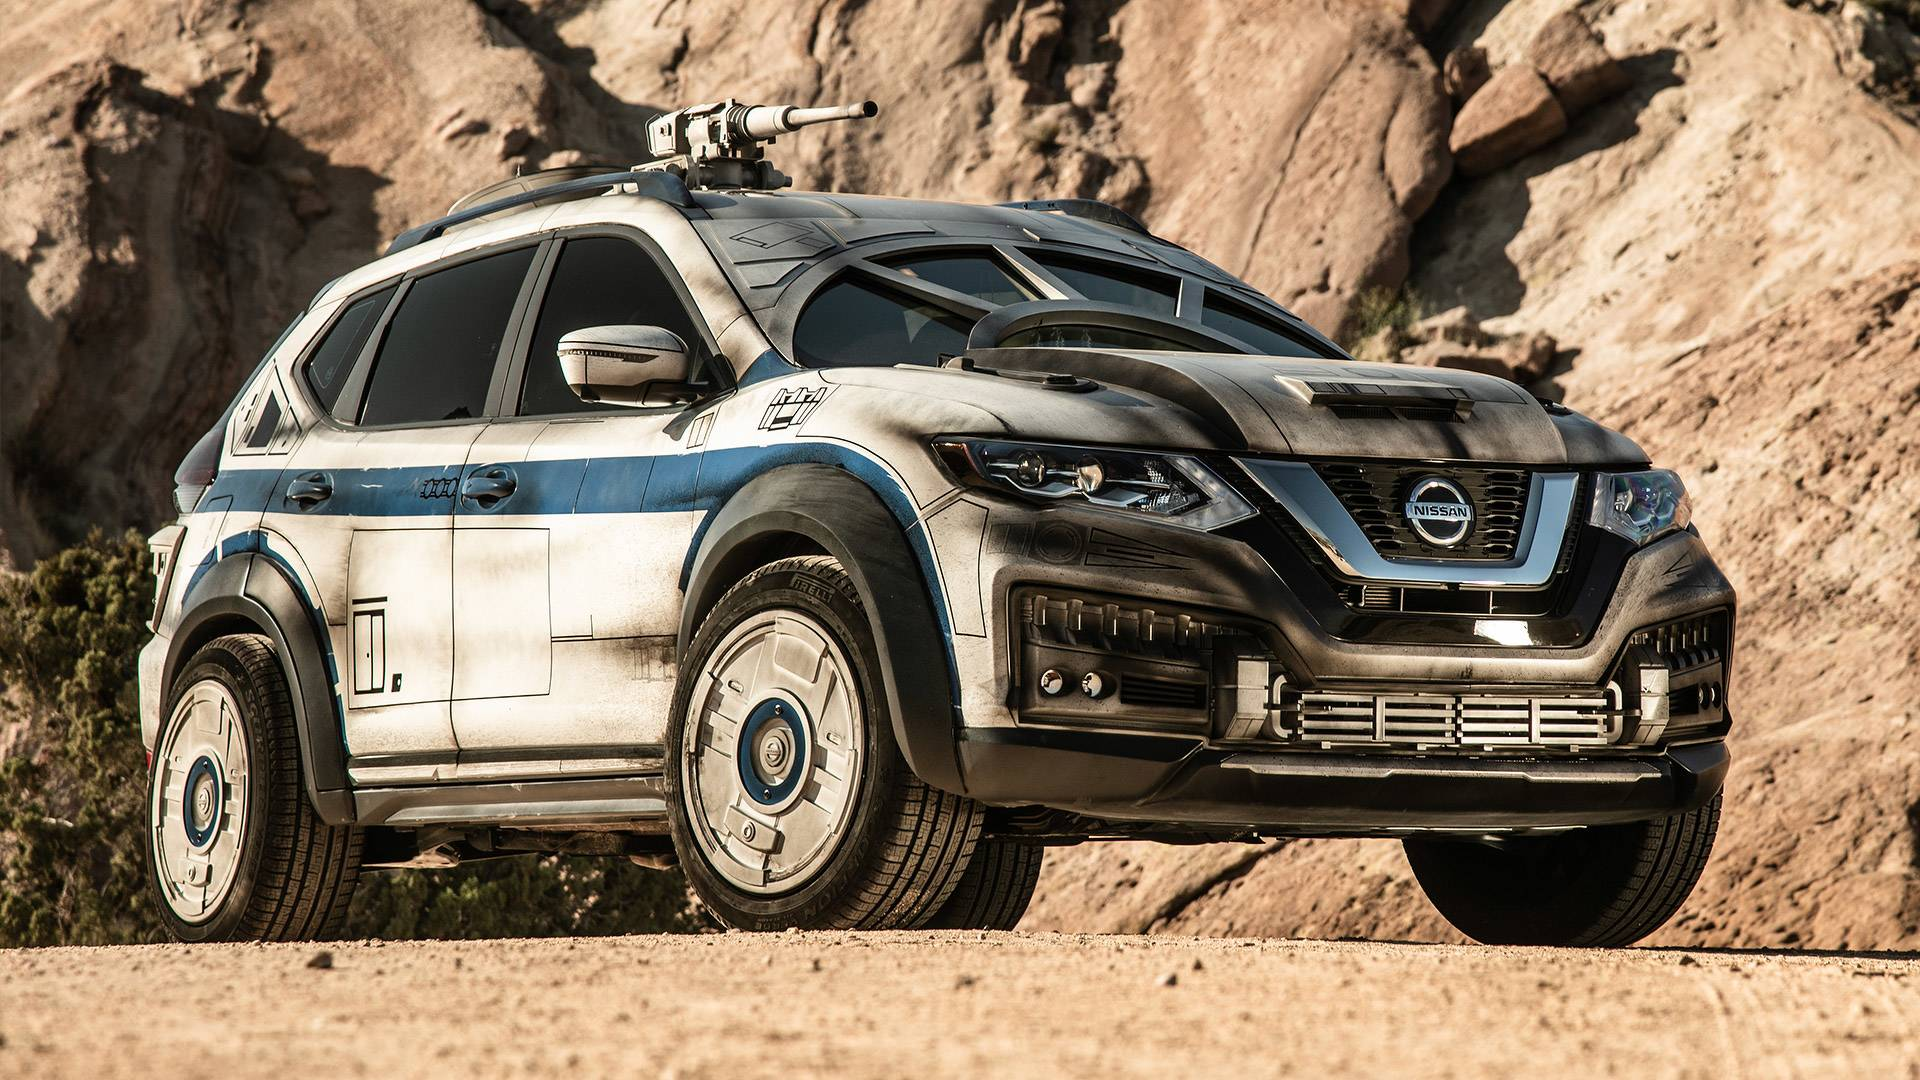 Nissans Millennium Falcon Inspired Rogue Hits Red Carpet Nissan Xtrail Offroad Modified